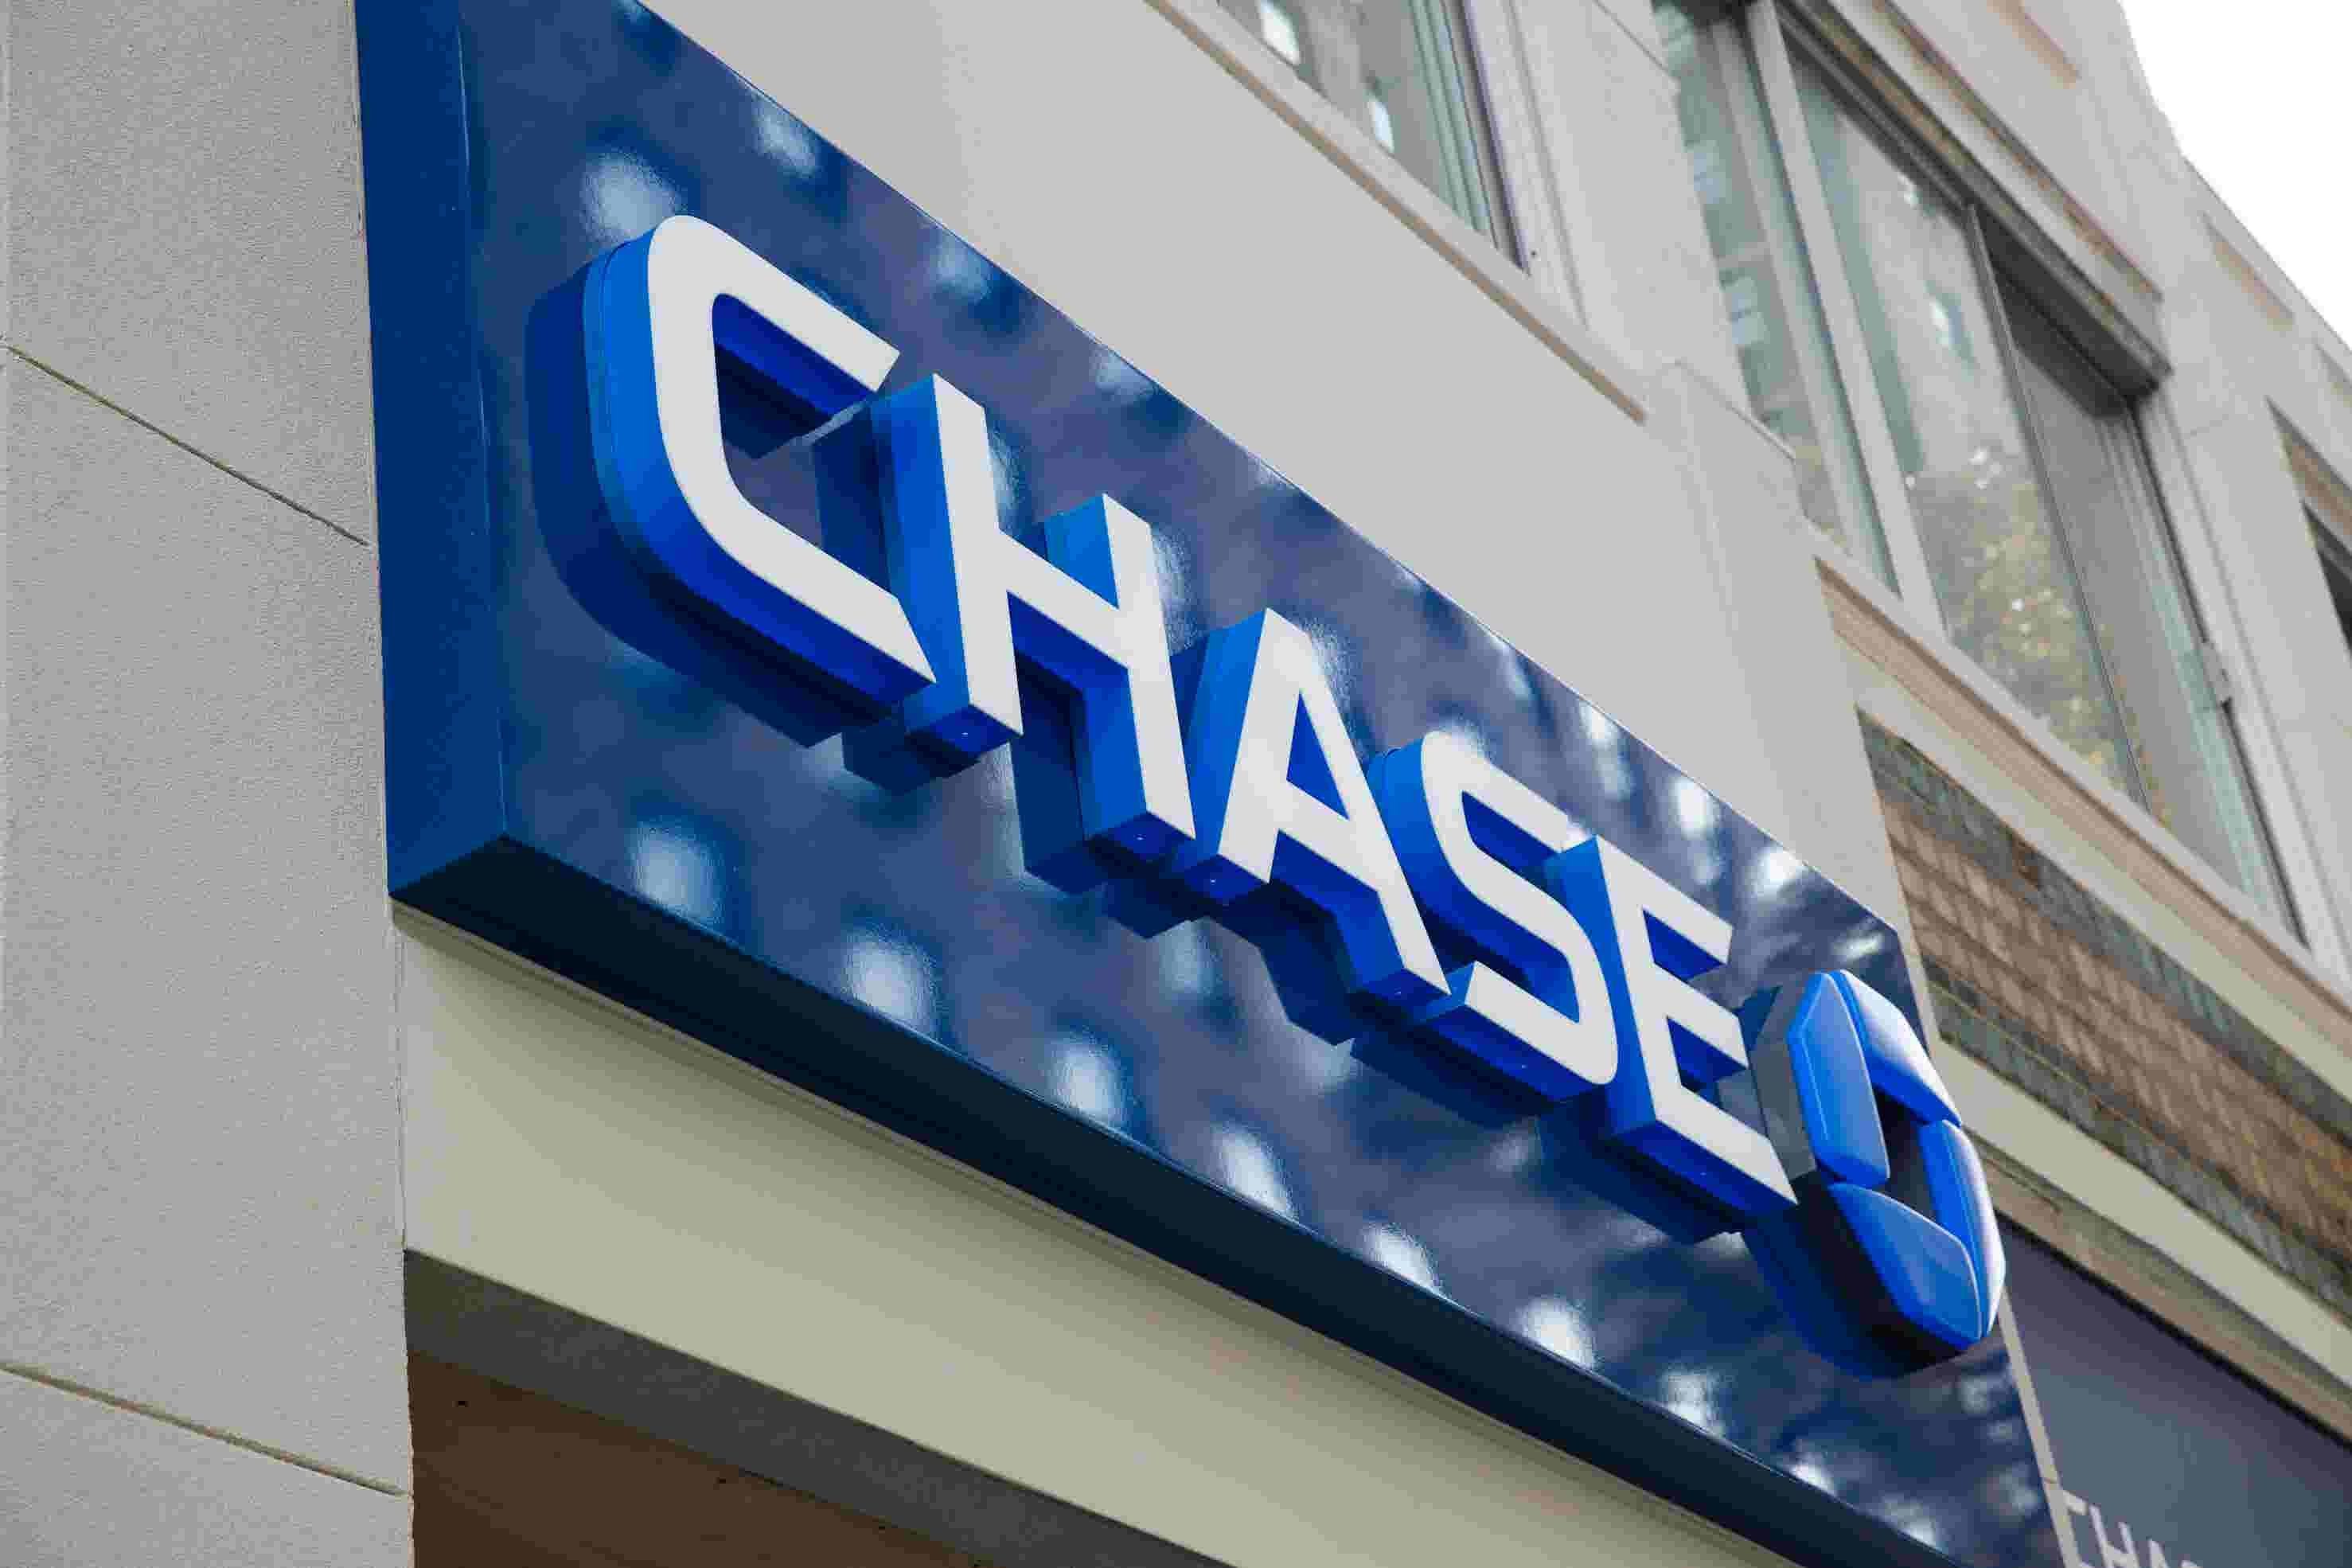 Chase bank's attempt to share some #MondayMotivation completely backfired